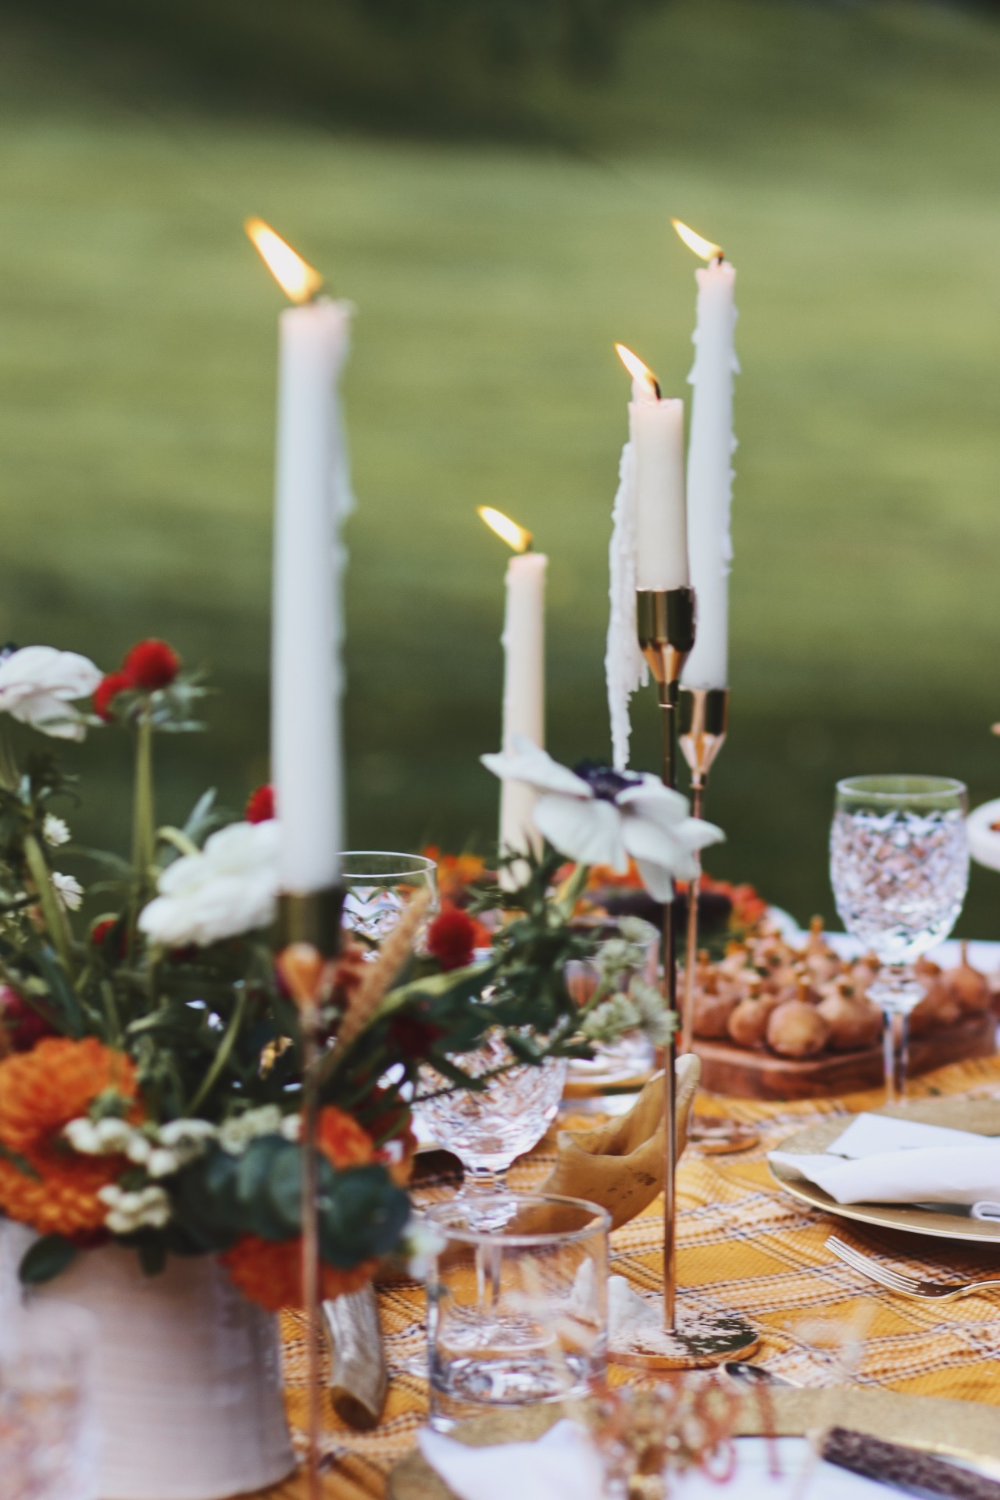 A Dreamy Woodland Inspired Rosh Hashanah Table for 2020 Rebekah Lowin - Notes on the Week